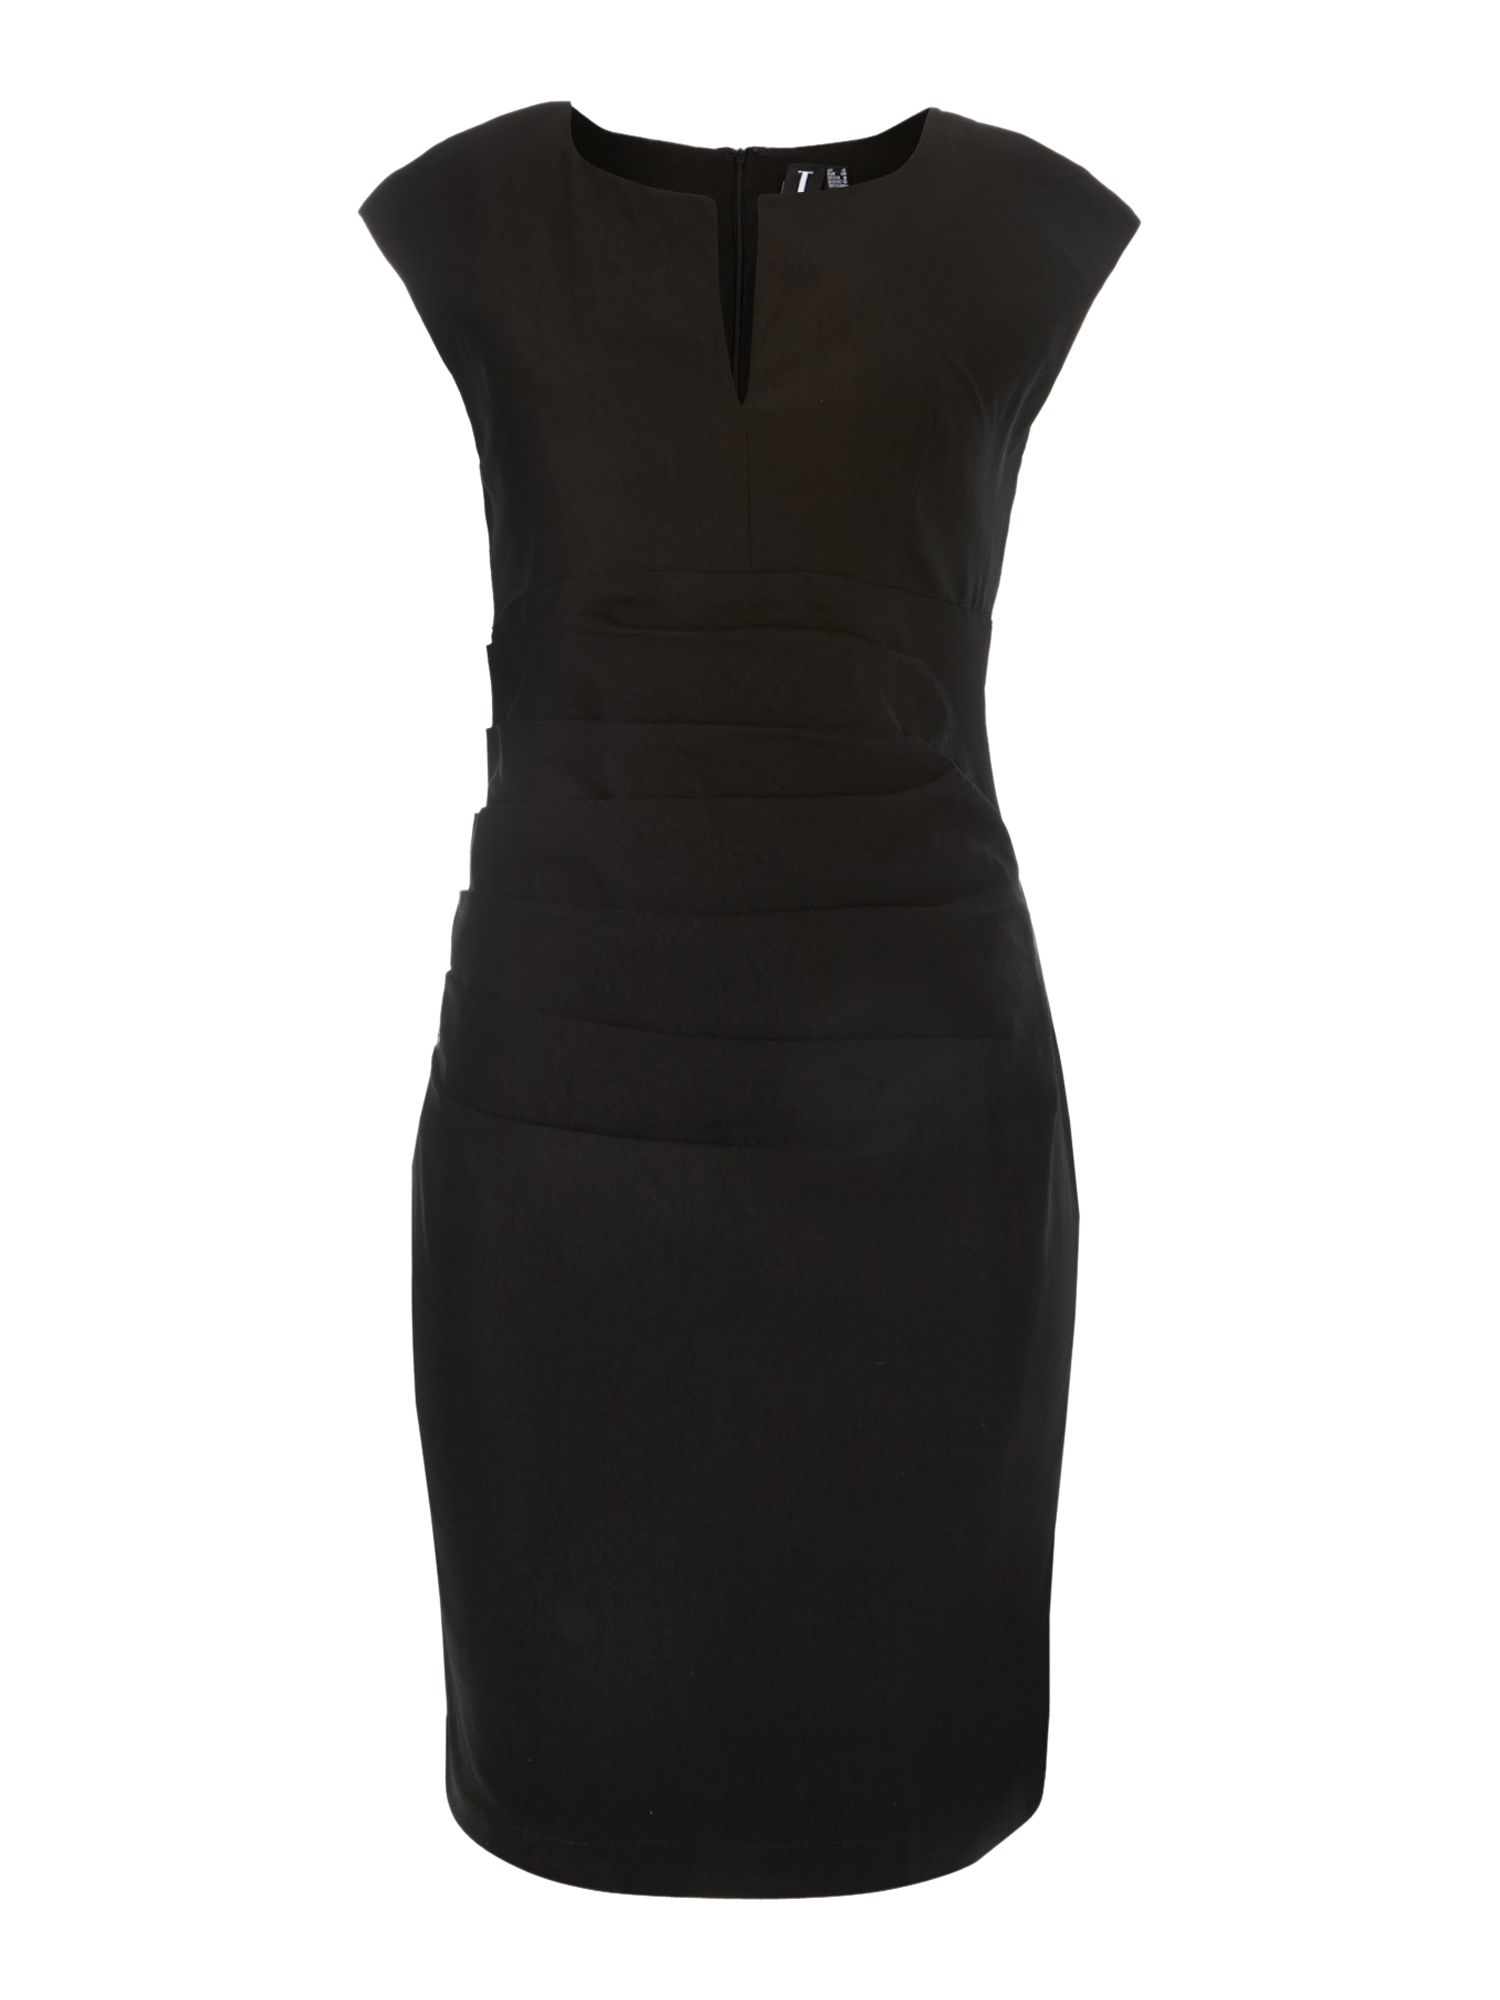 Plunge neckline pencil dress